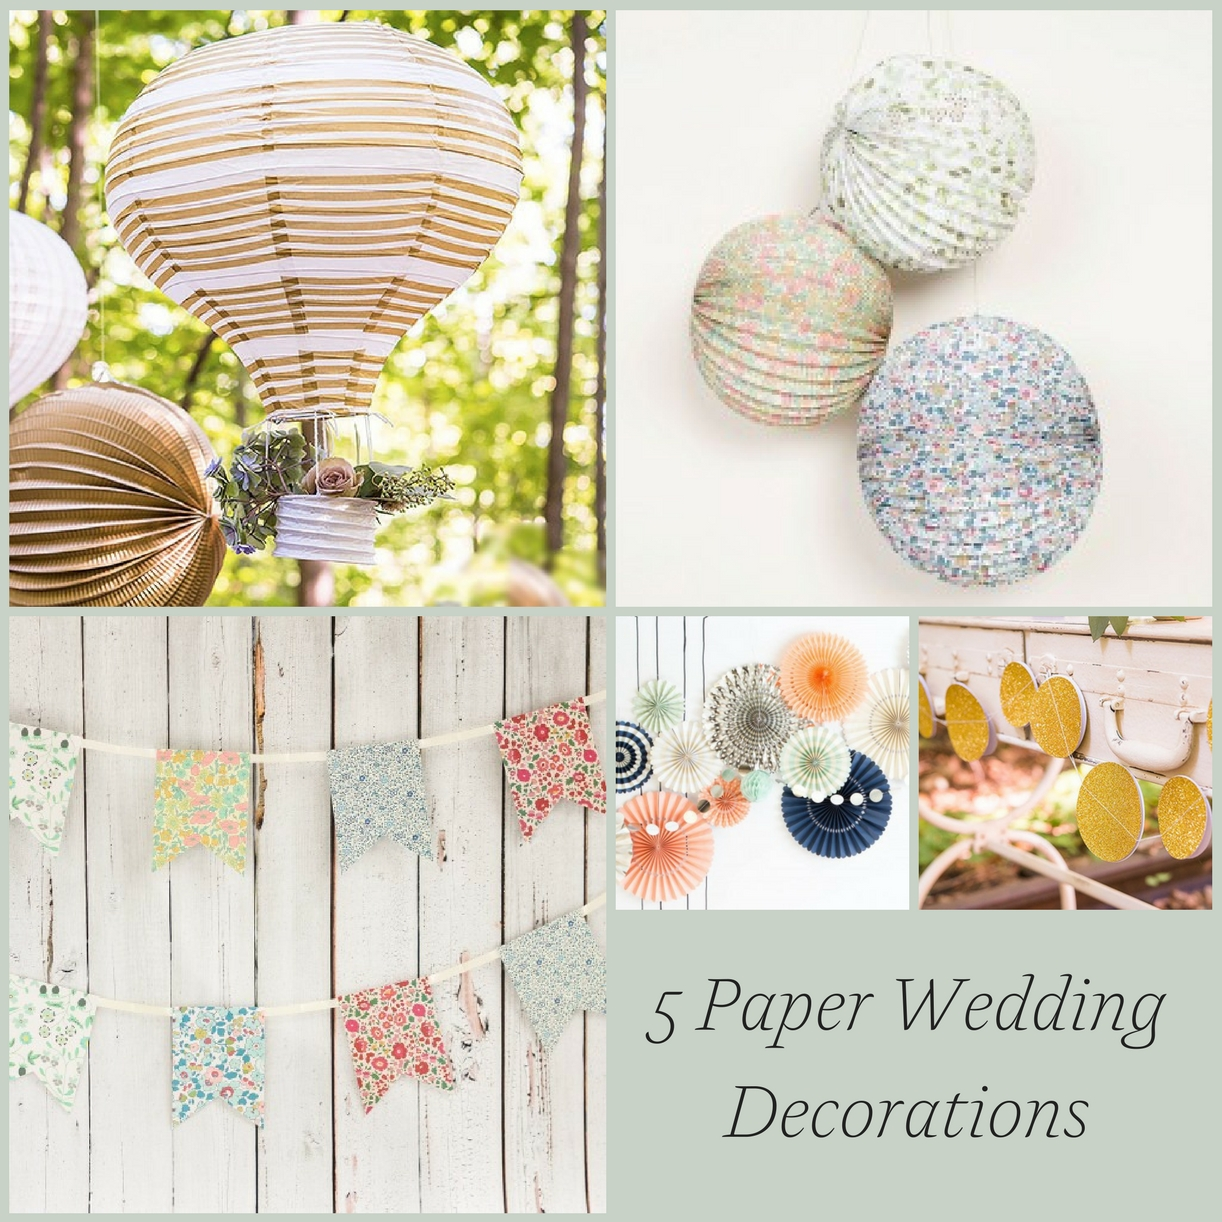 5 Paper Wedding Decorations for the DIY Bride to Use » Hill City ...